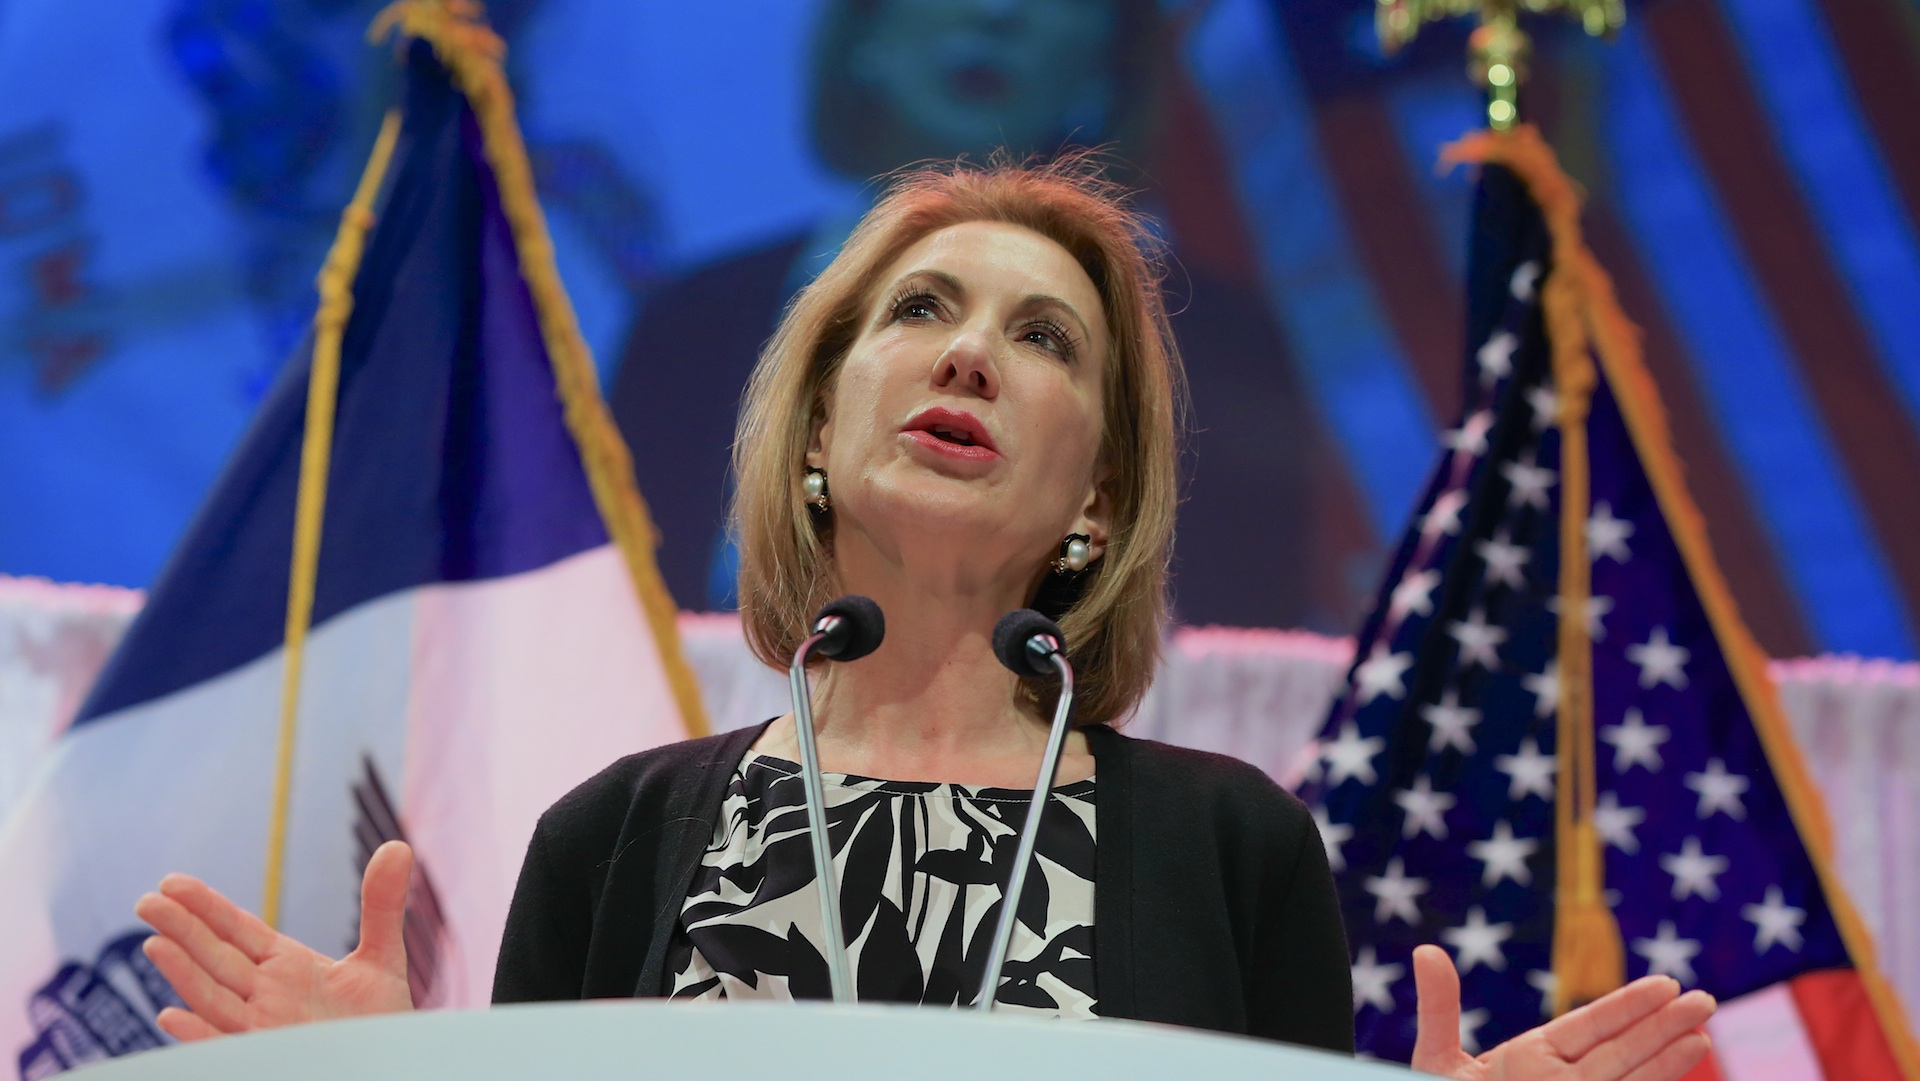 The sexism that propels Carly Fiorina's candidacy